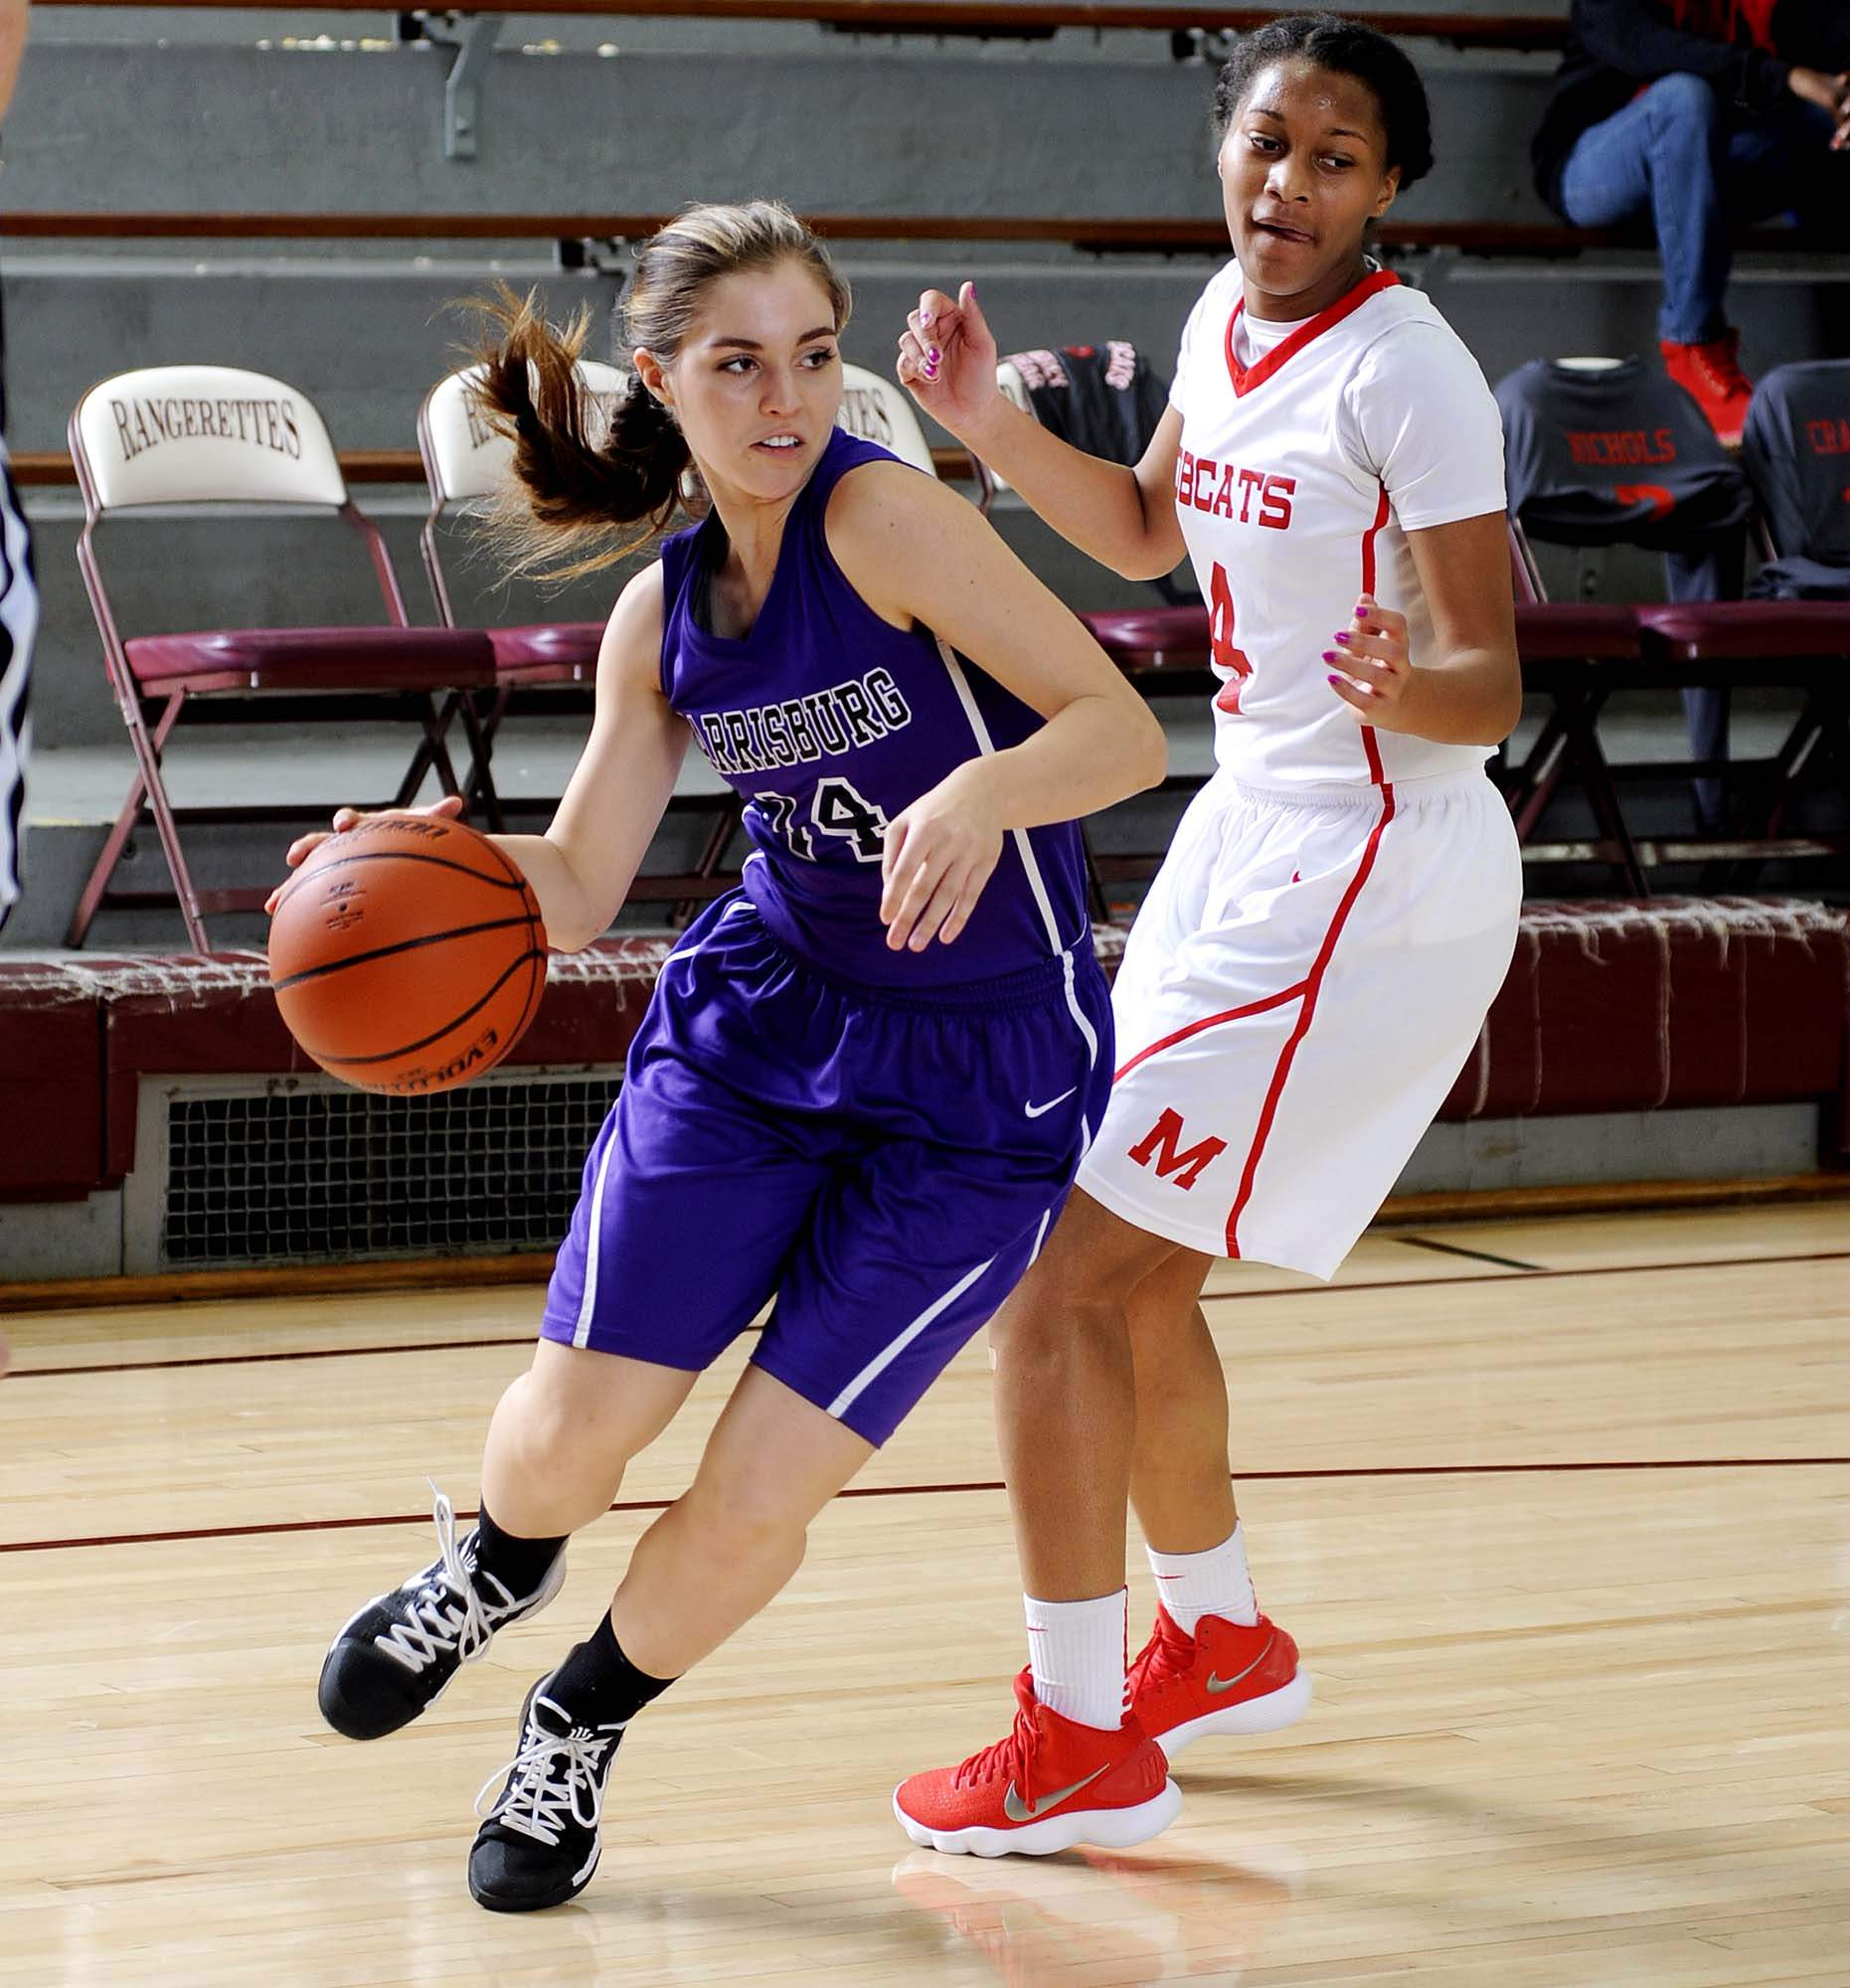 Harrisburg's Madeline Rider drives baseline for the Bulldogs in action against Meridian Wednesday at the Rangerette Classic at Benton High School